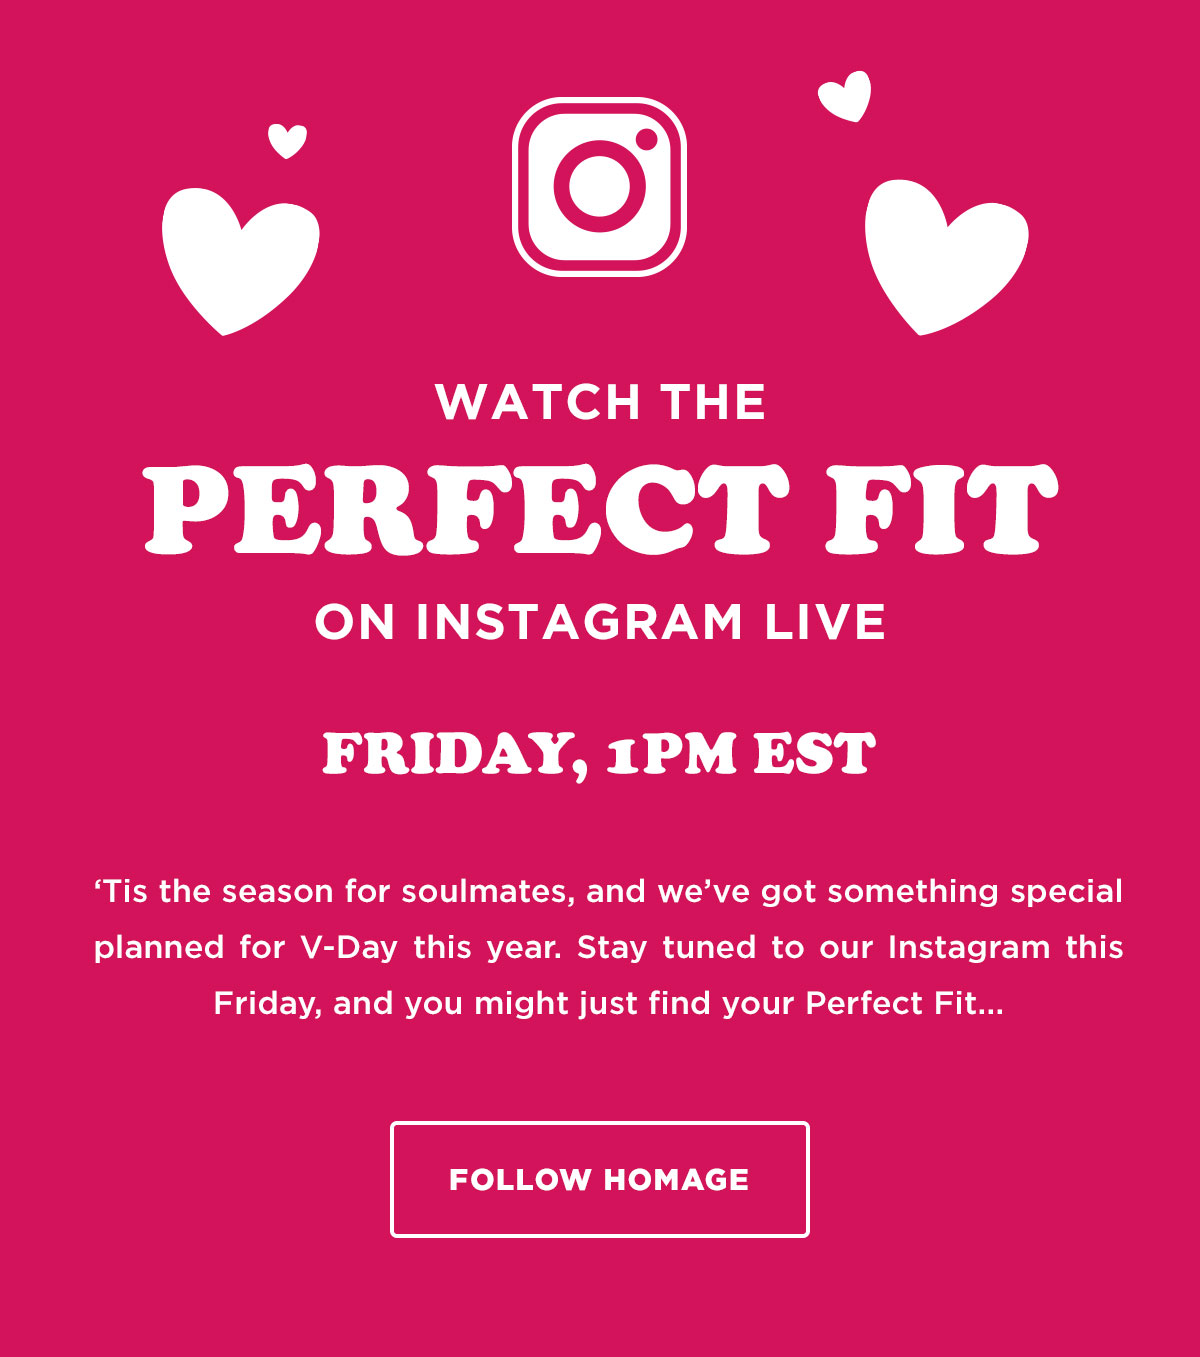 Watch the Perfect Fit on Instagram Live! Friday at 1pm Est.